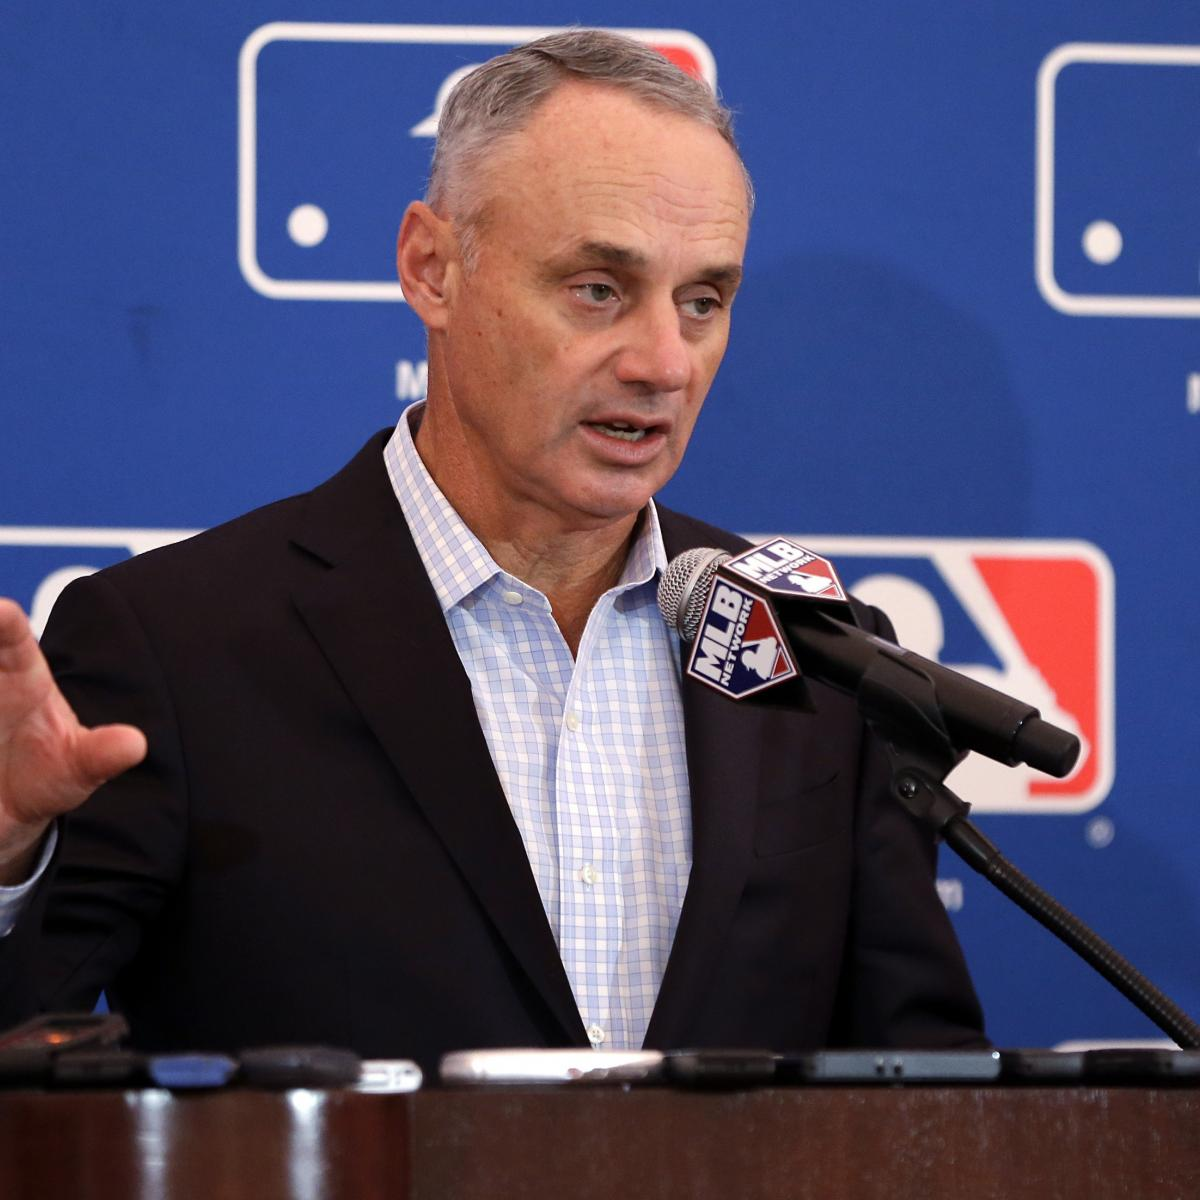 MLB, Fox Announce New TV Rights Contract Worth Reported $5.1 Billion